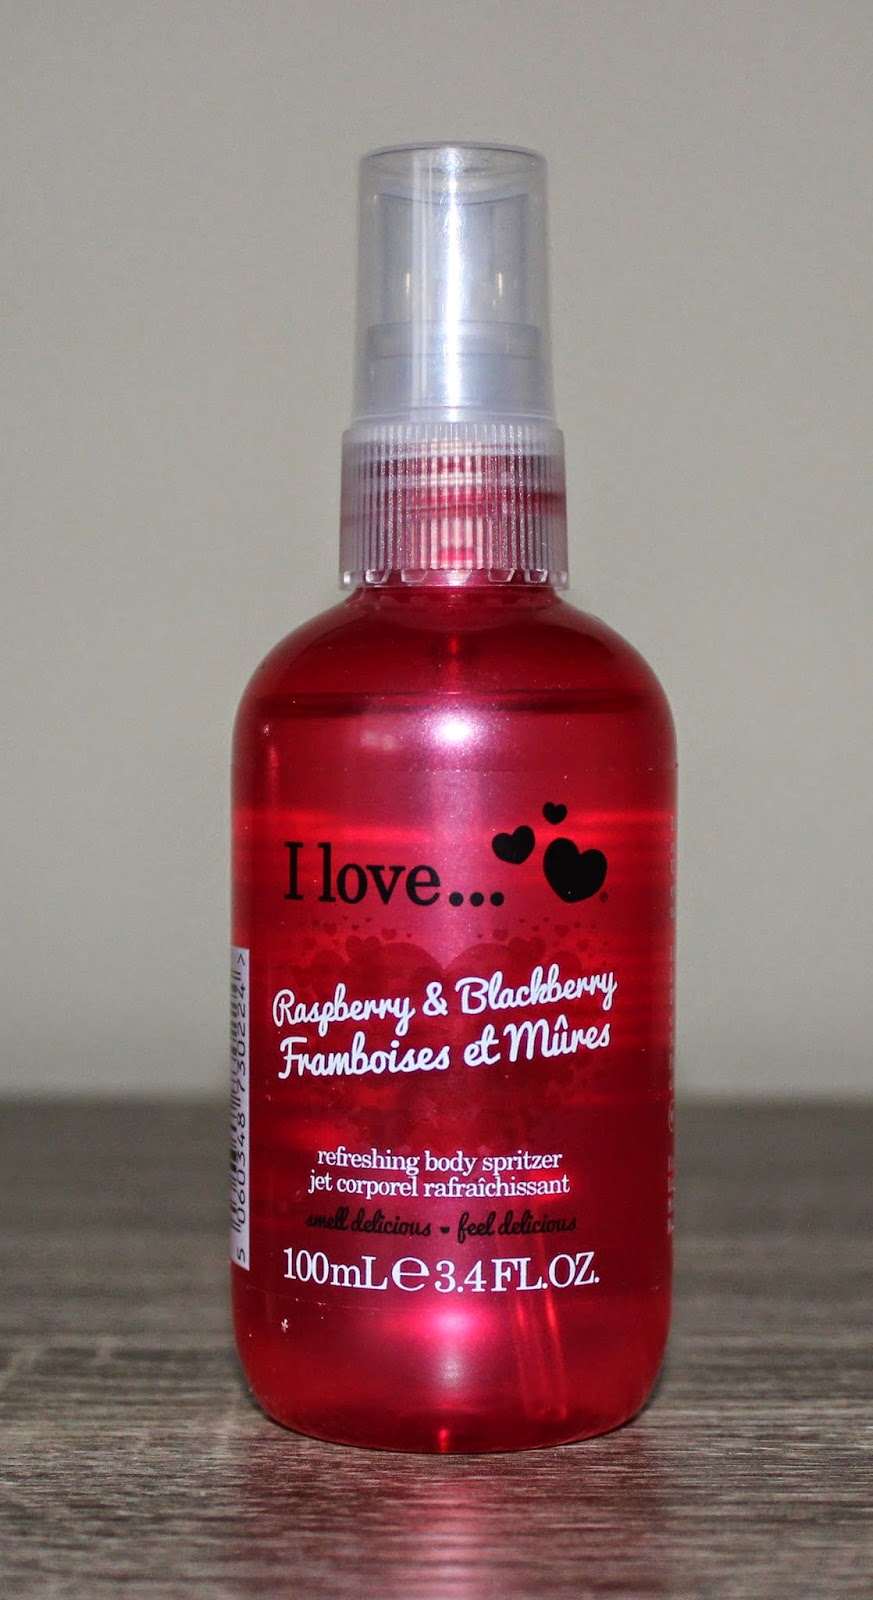 I Love... Raspberry & Blackberry Refreshing Body Spritzer